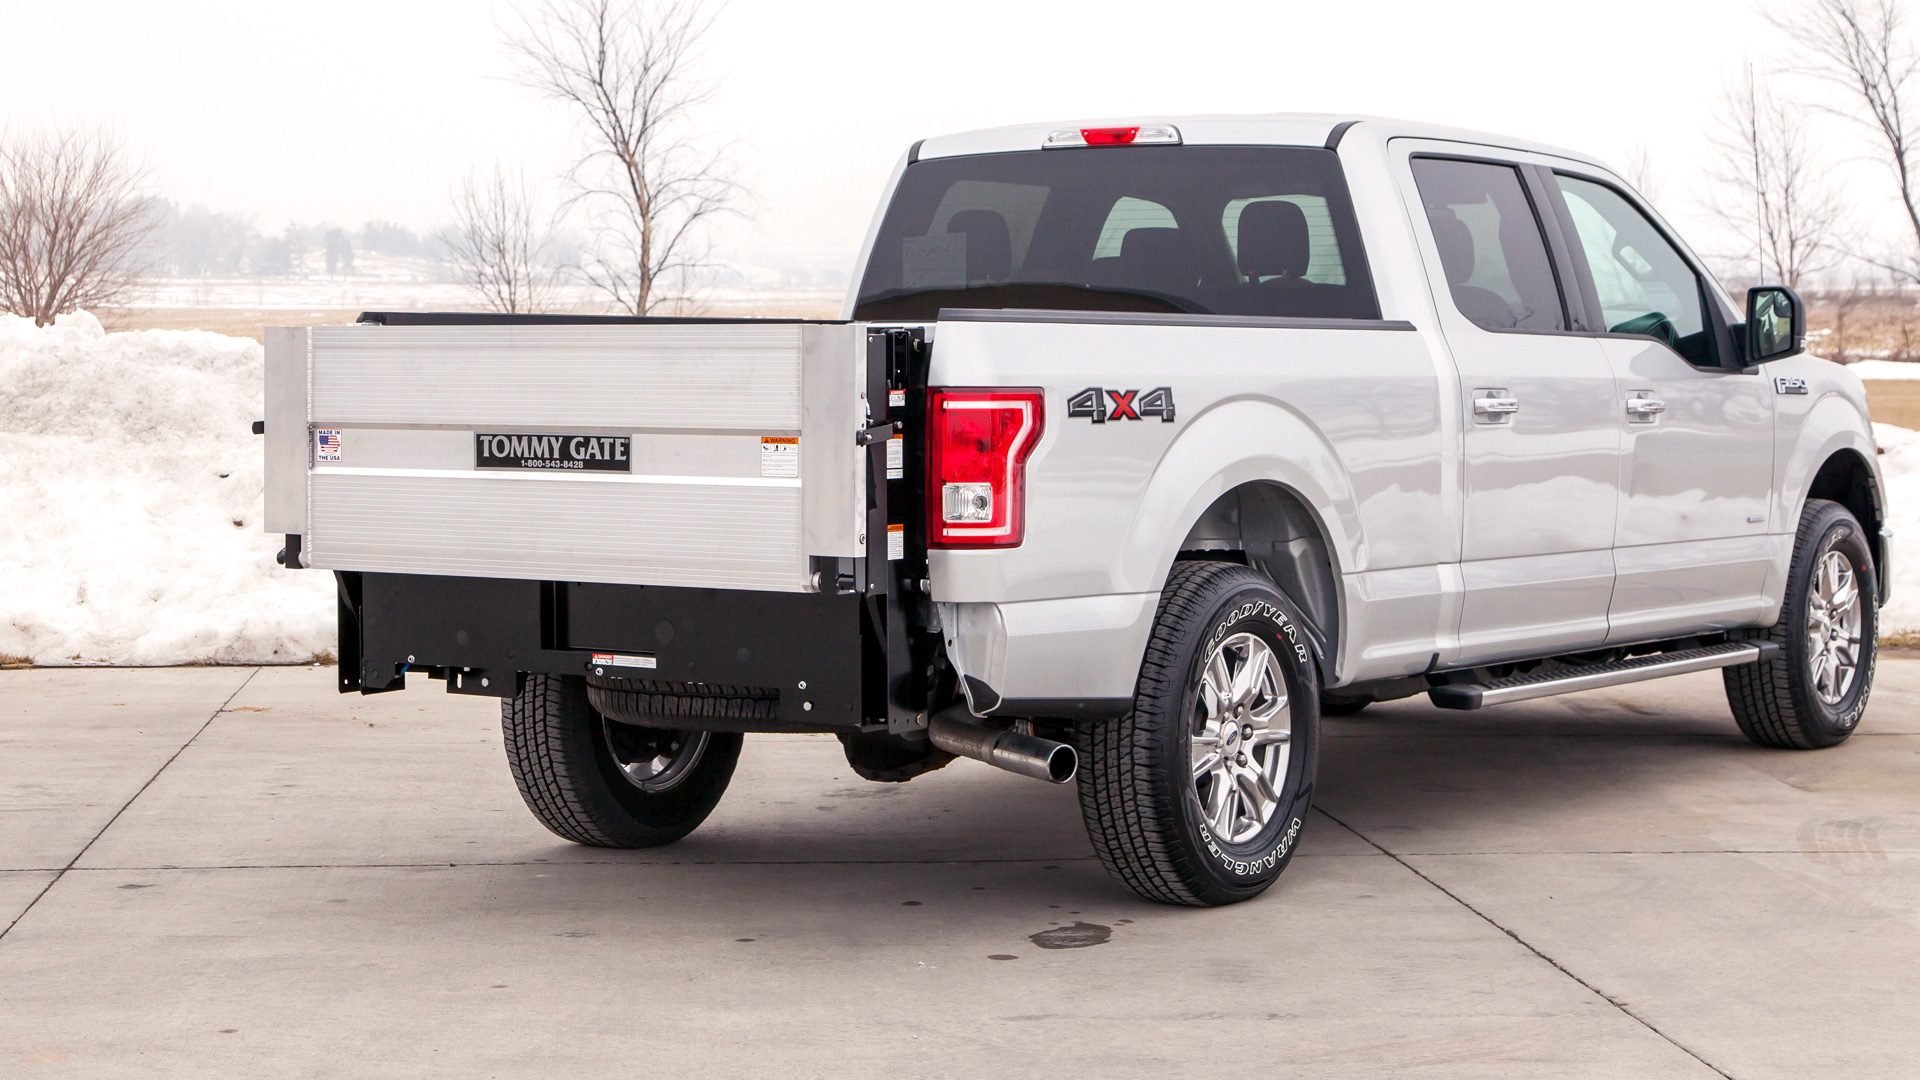 hight resolution of  tommy gate g2 series liftgate in the closed position on a ford f 150